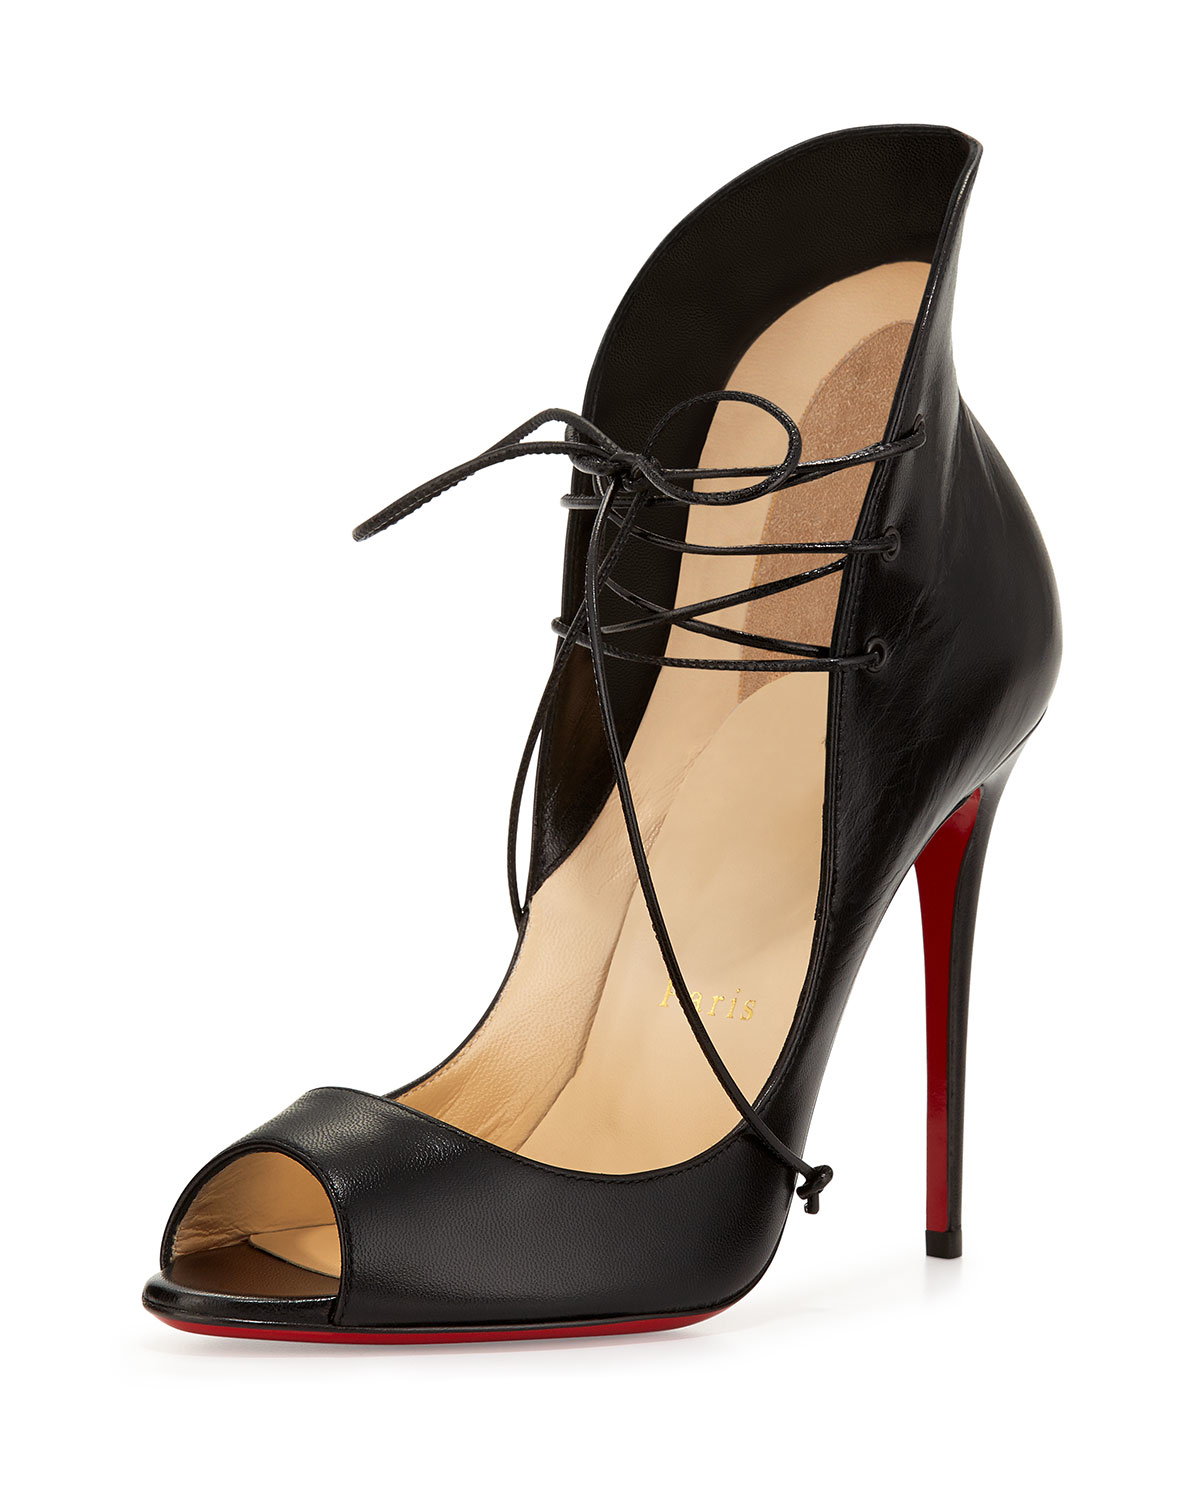 Christian Louboutin Mega Vamp Lace Up Red Sole Pump In